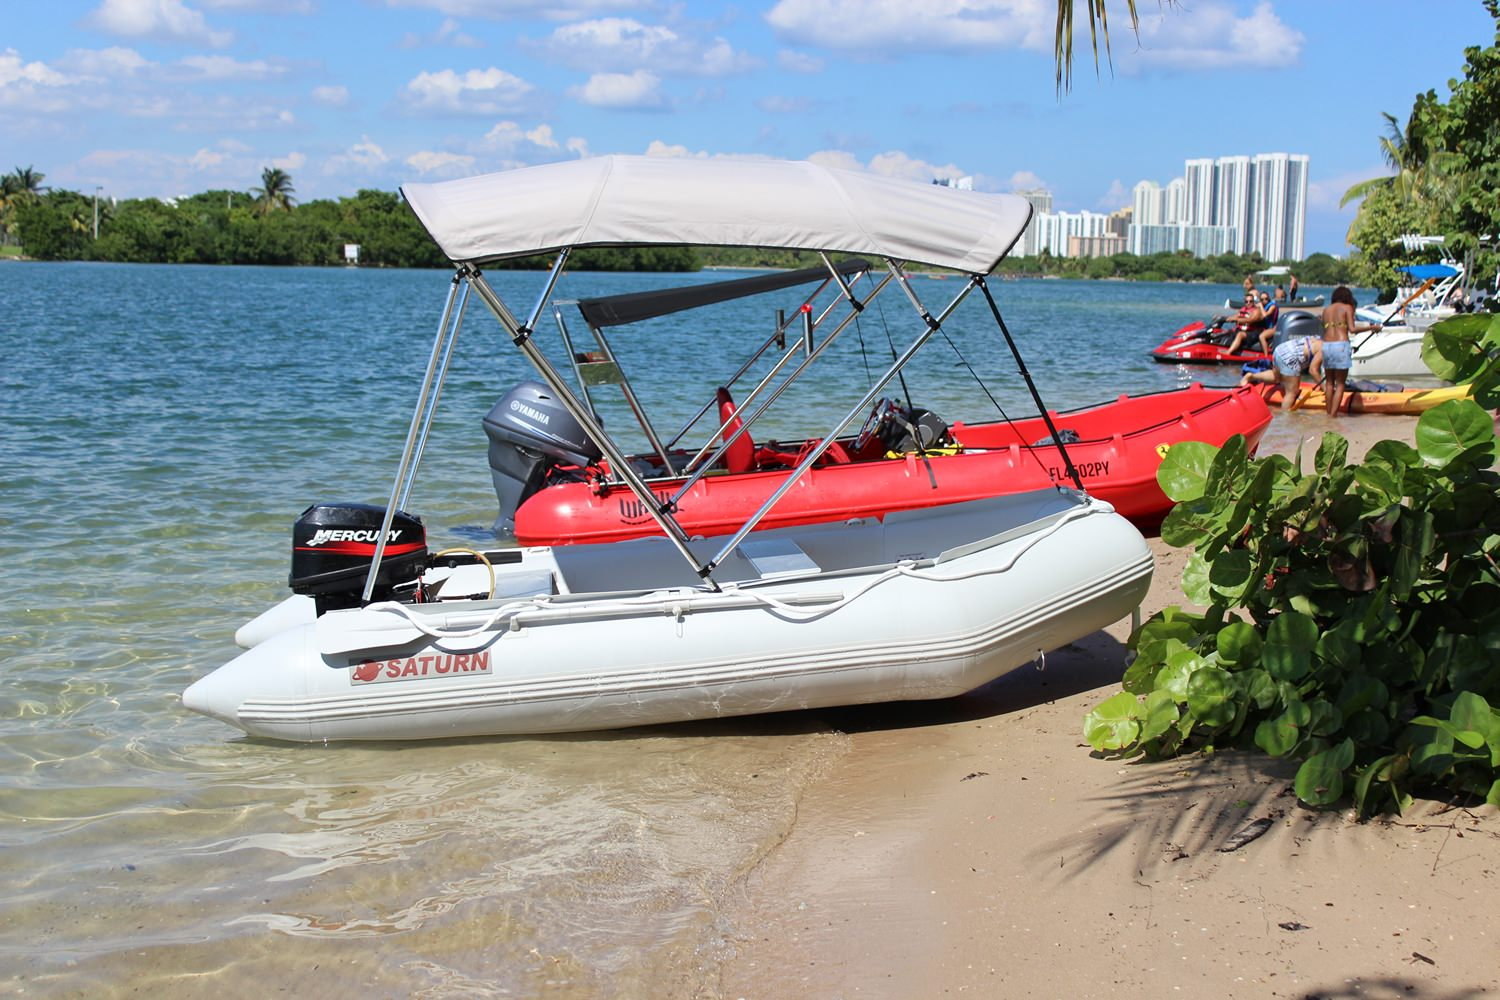 11' Saturn Inflatable Boat SD330 - With Outboard Motor and 4-Bow Bimini Top